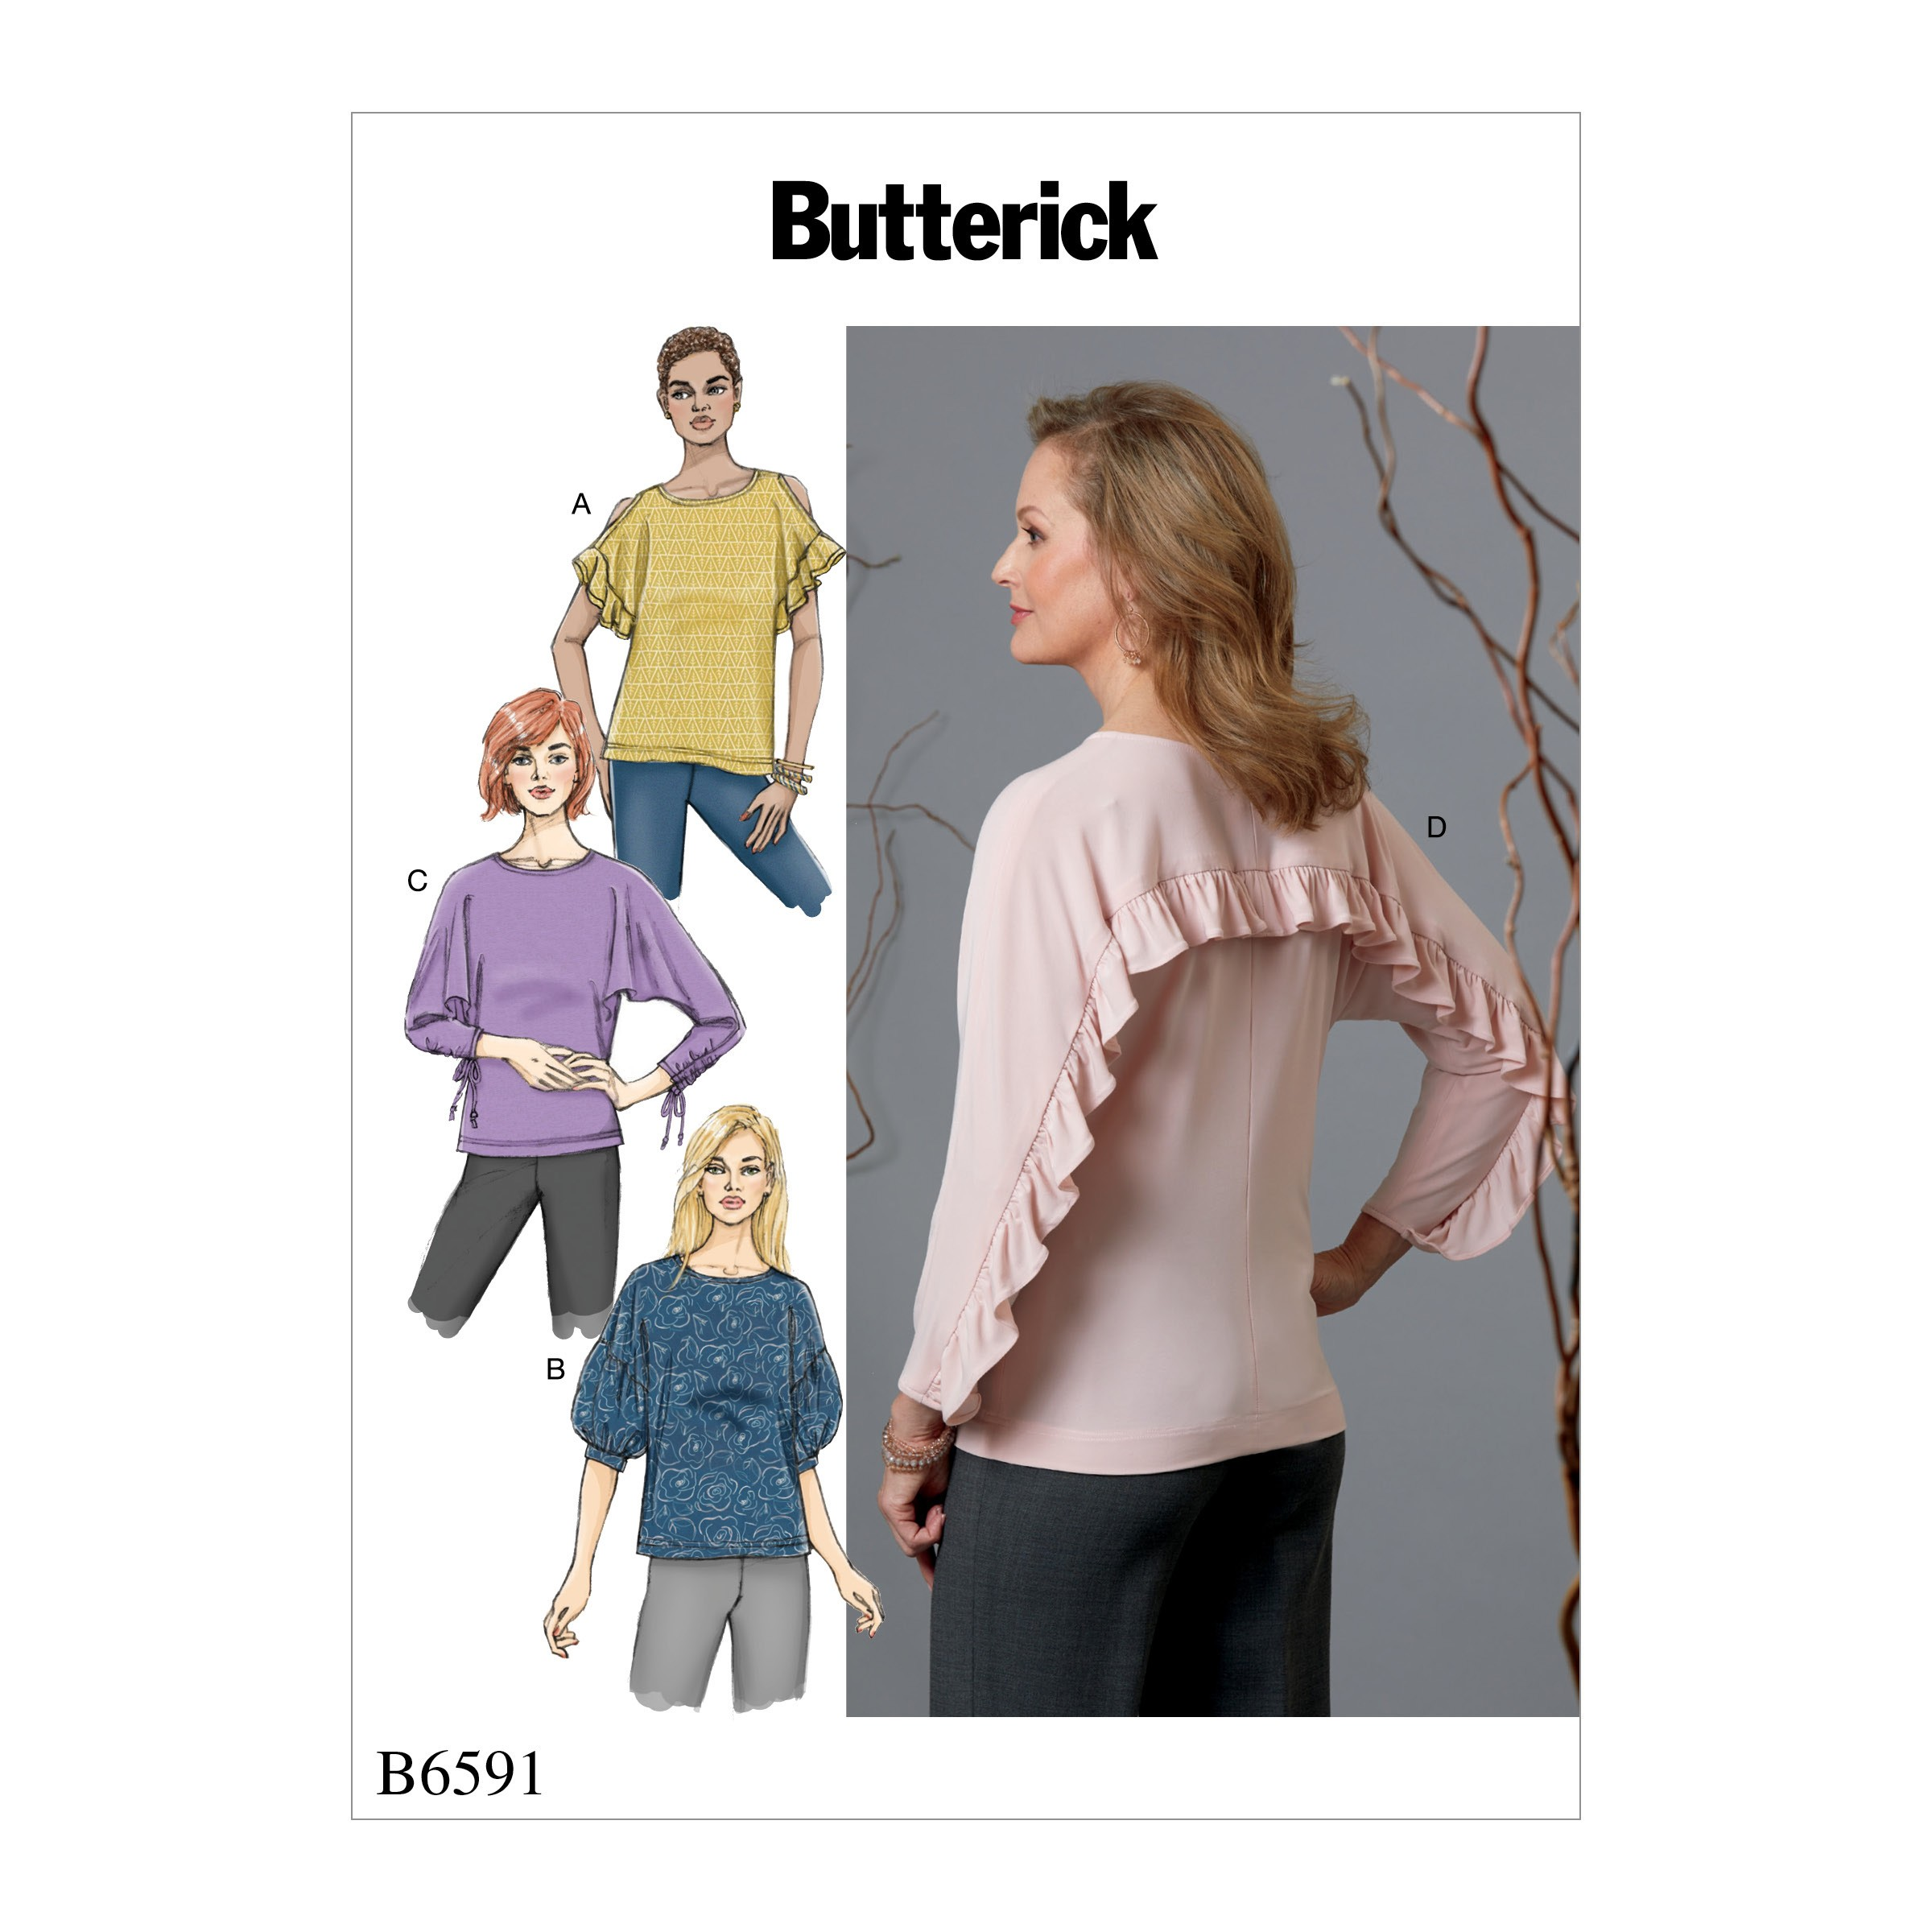 Butterick Sewing Pattern 6591 Misses' Pullover tops with Sleeve Variations